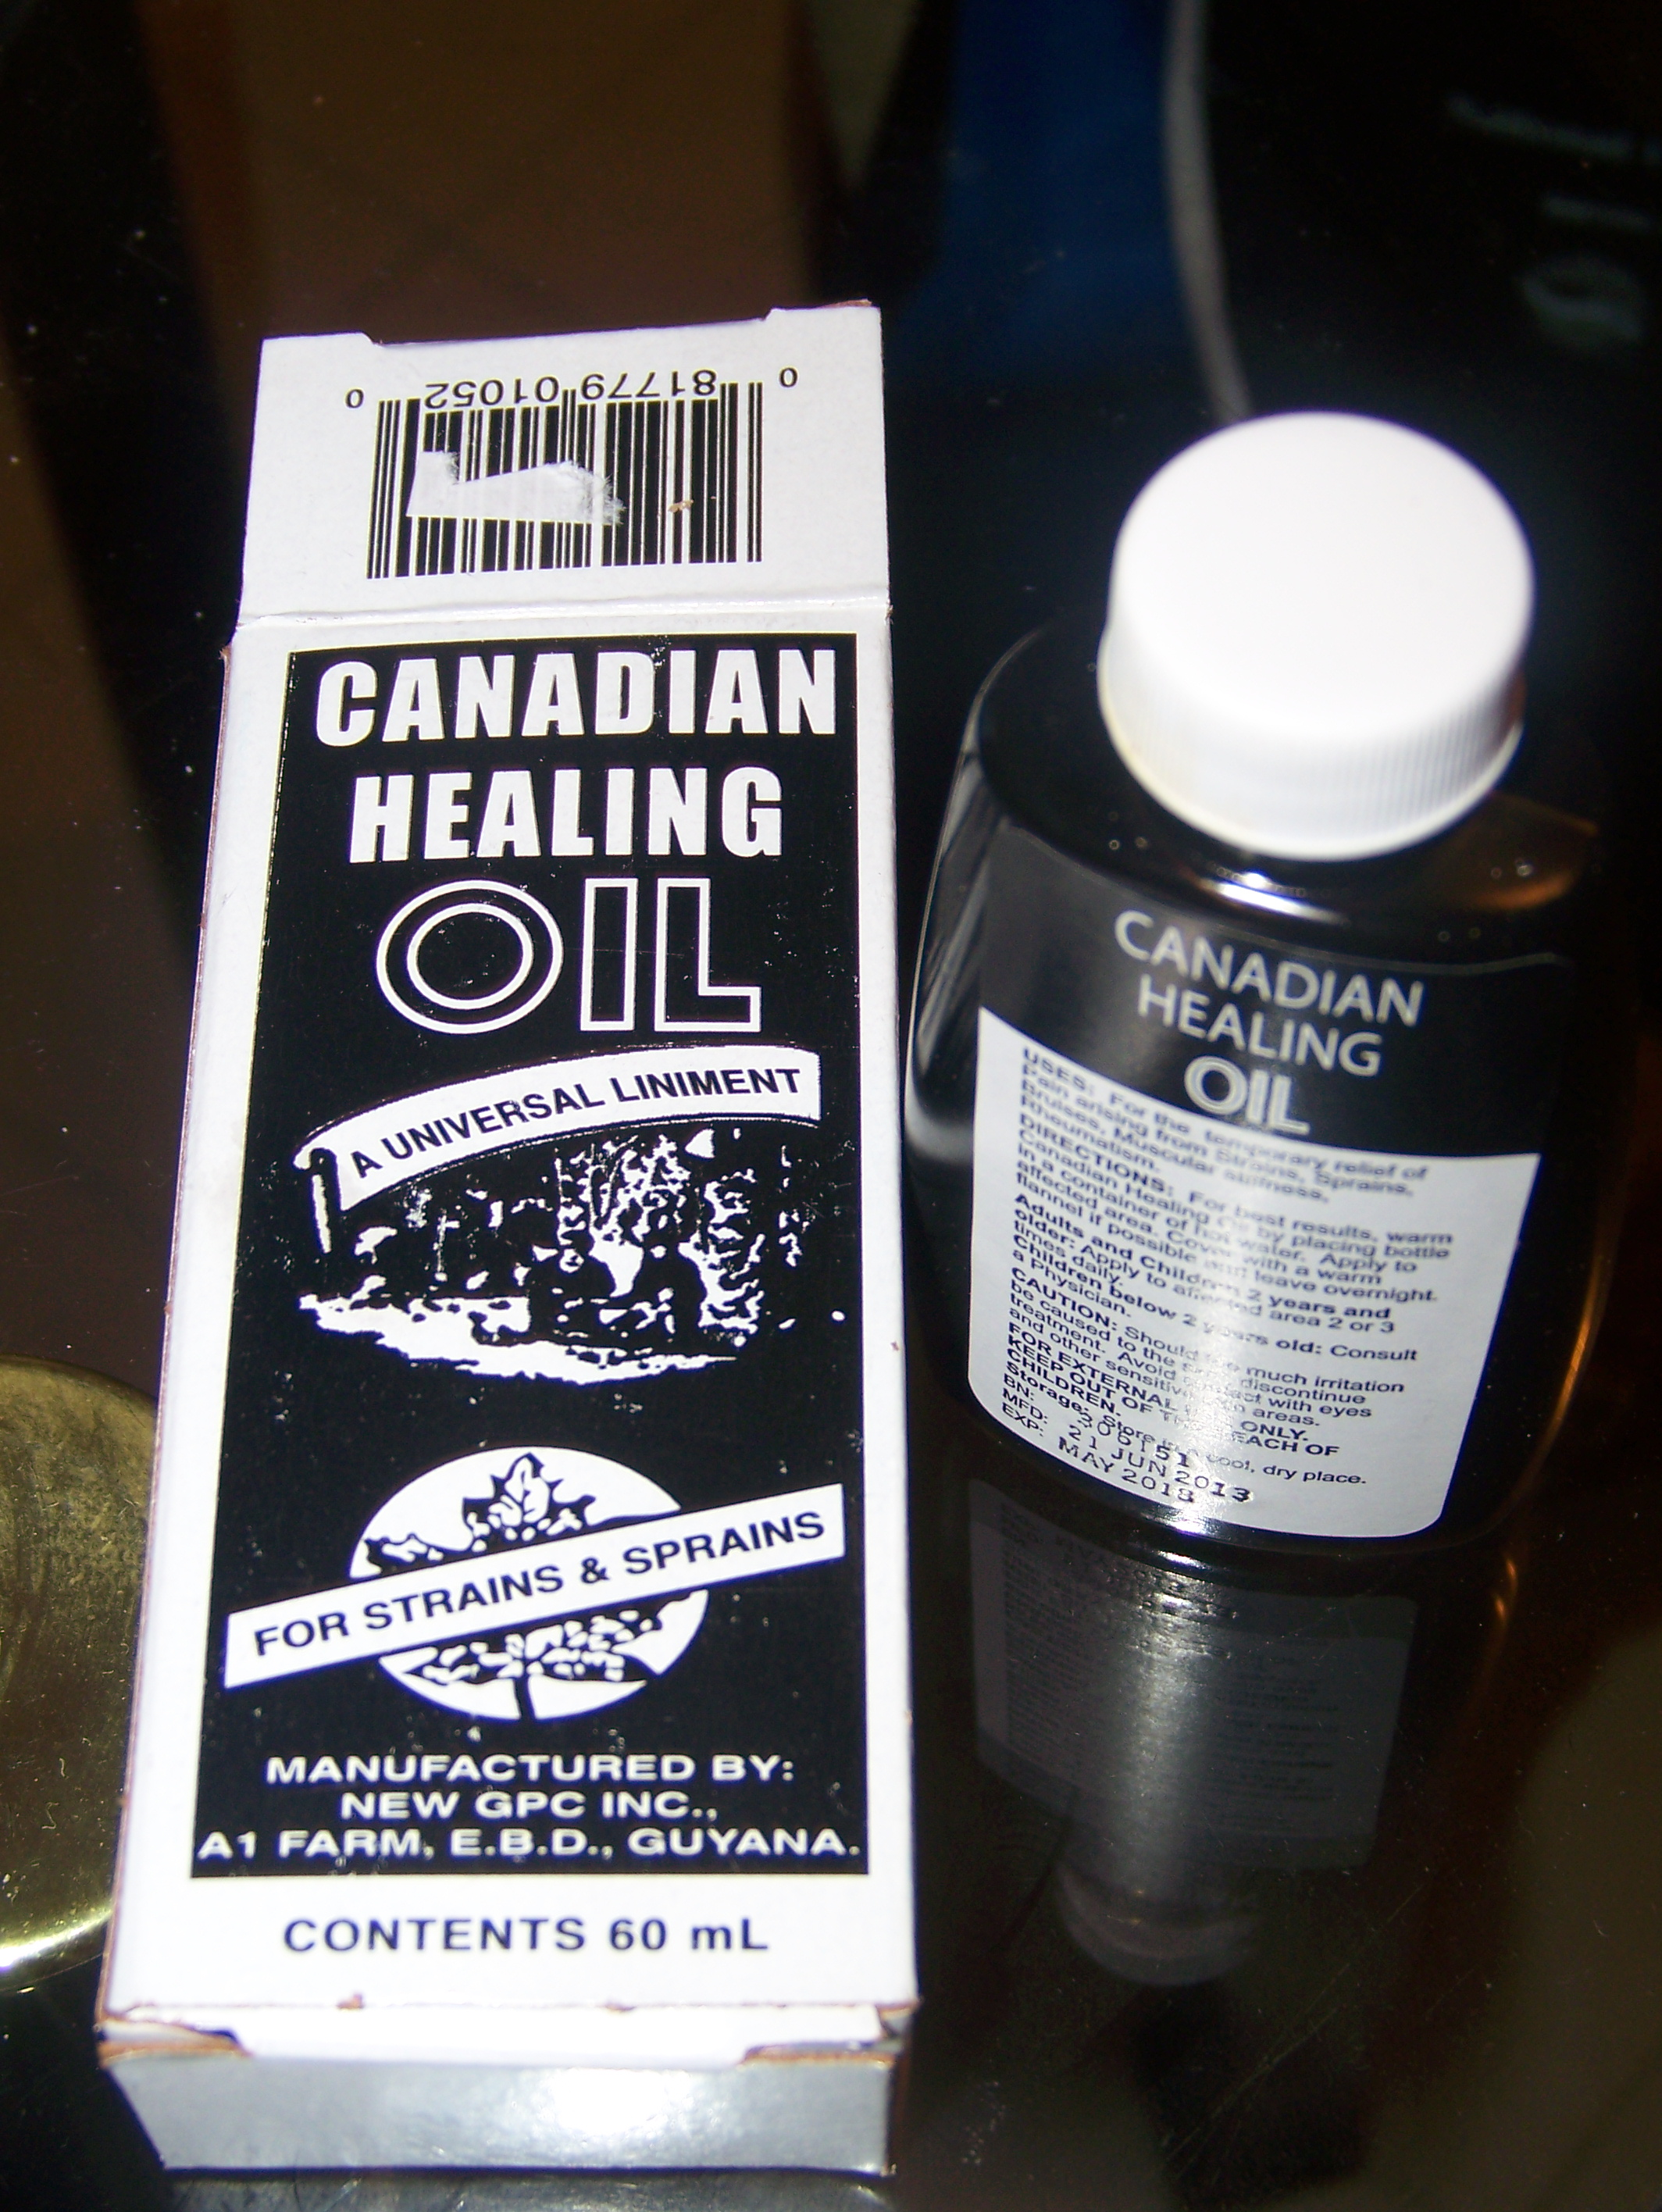 Canadian Healing Oil, good for man or beast | Jamaican Journal